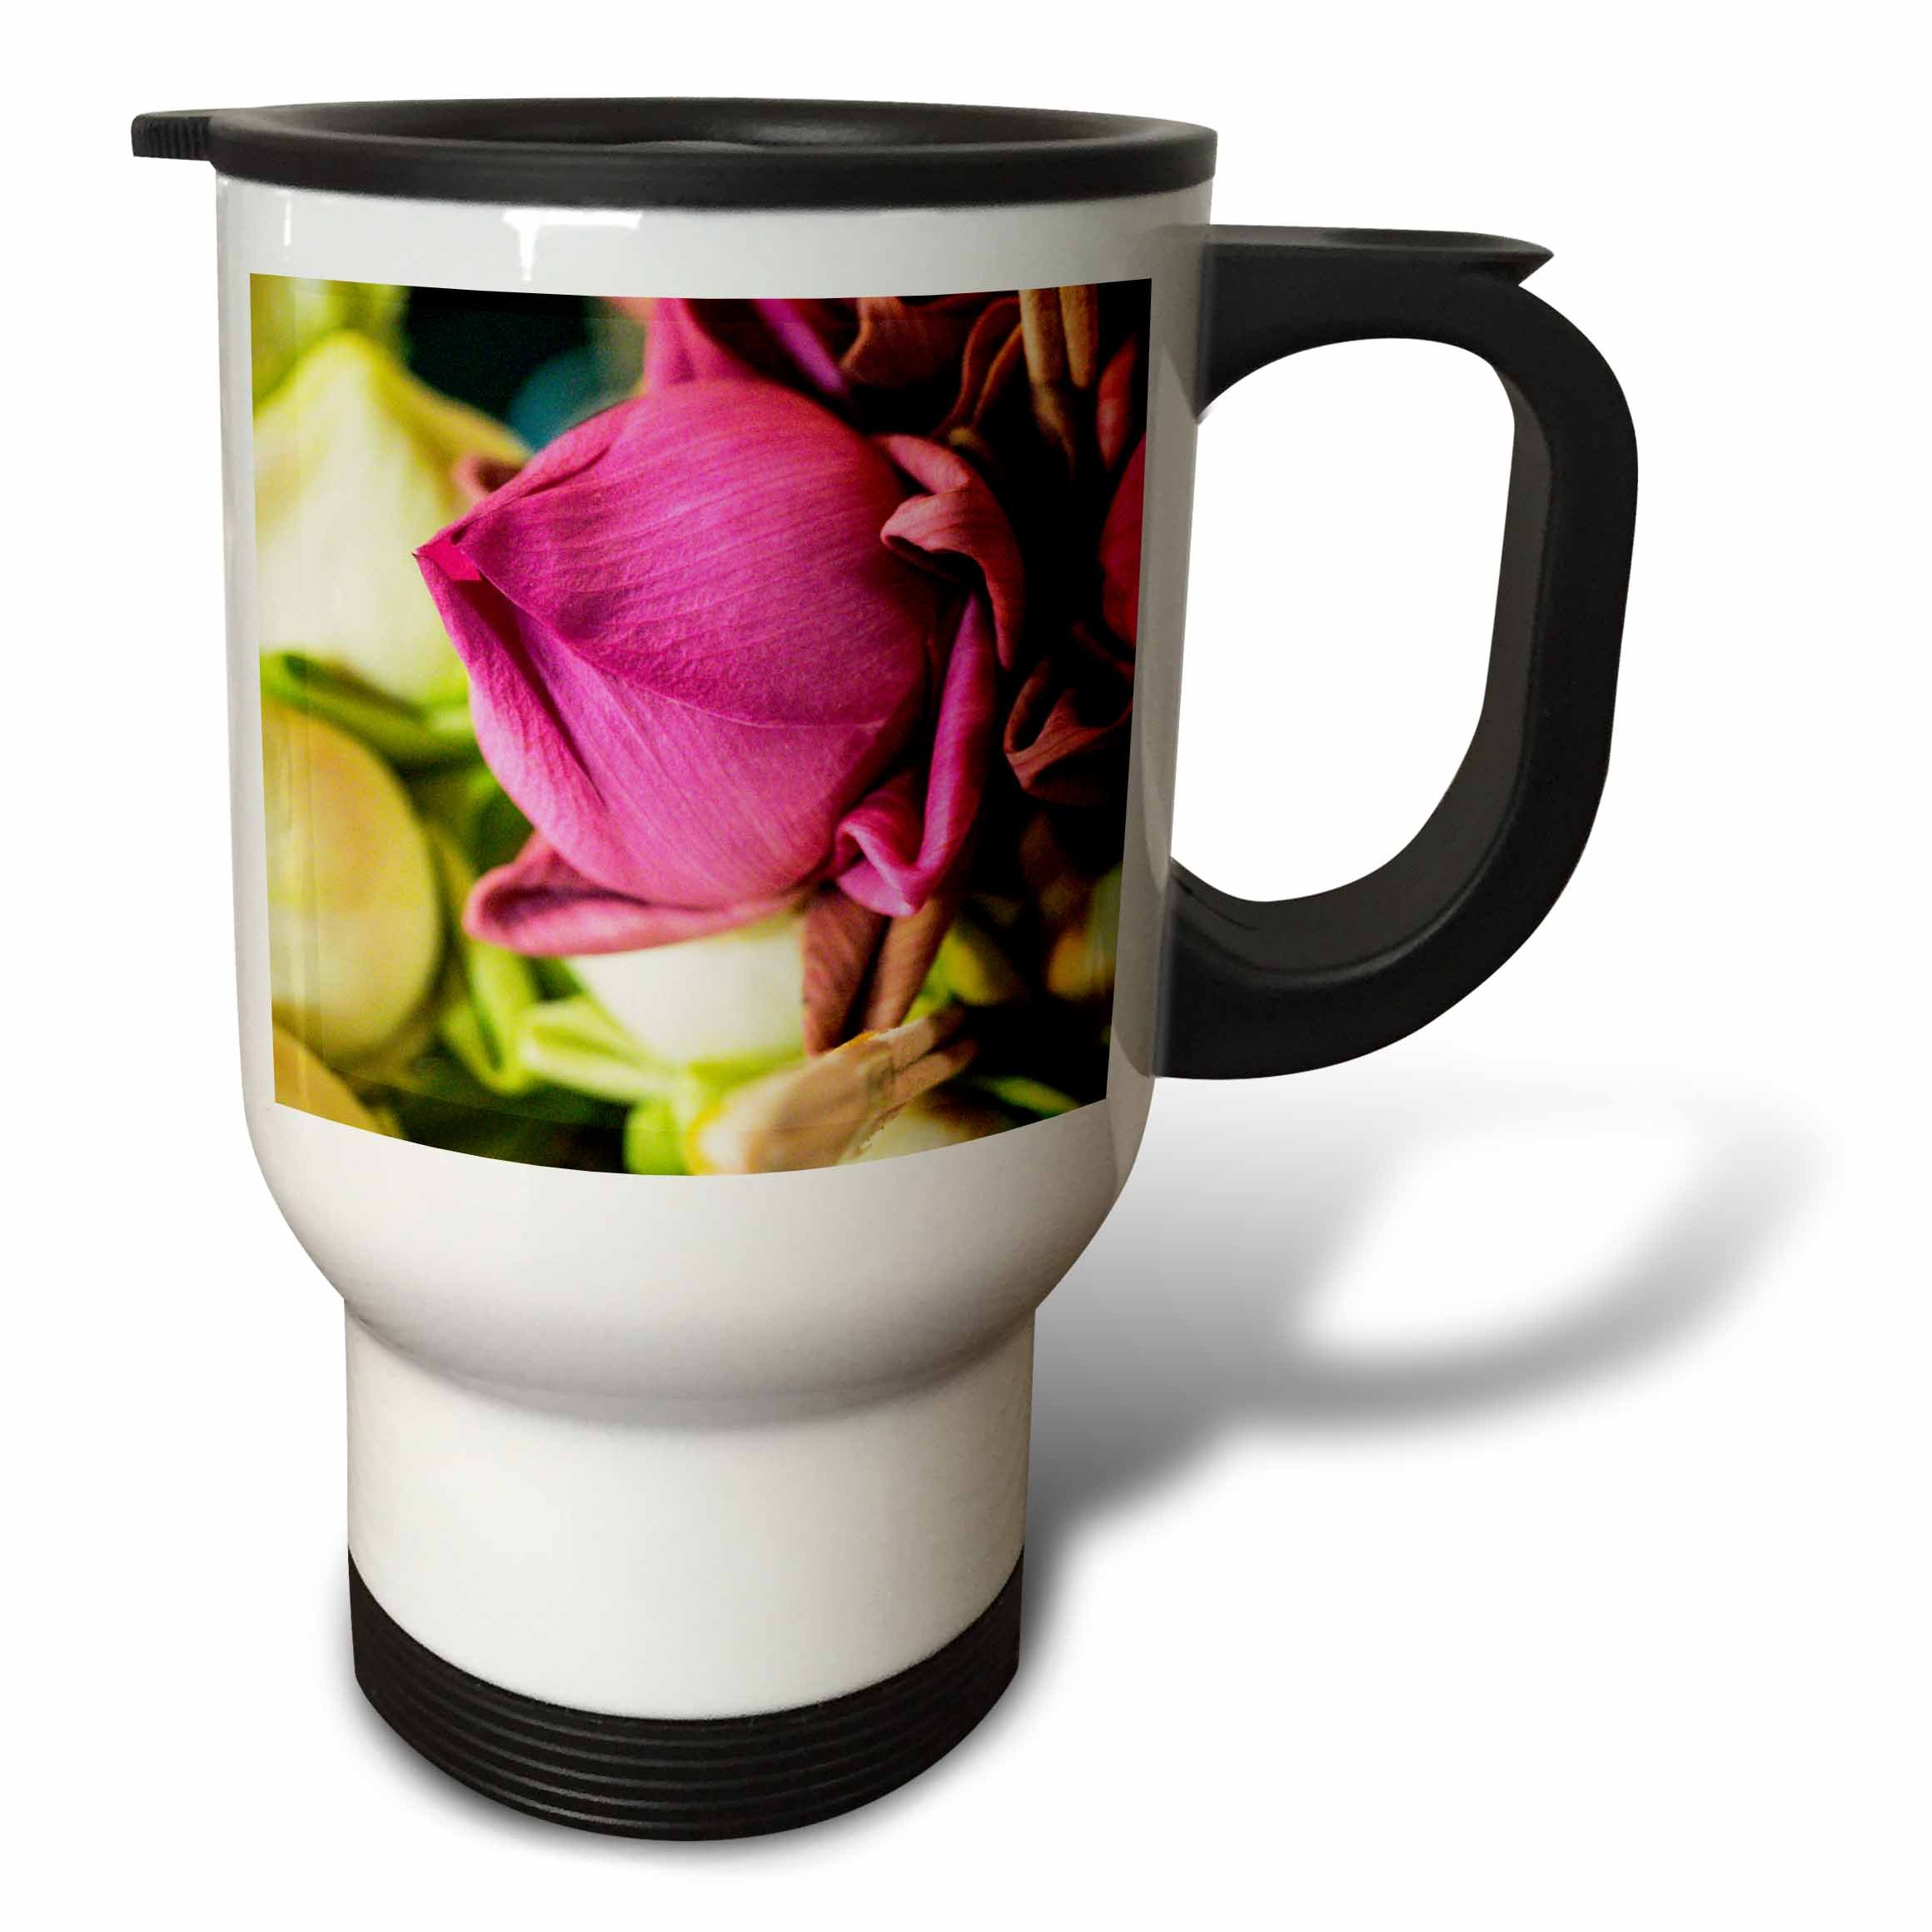 3dRose Danita Delimont - Flowers - Thailand, Chiang Mai, Flowers at the Thai Market Place - 14oz Stainless Steel Travel Mug (tm_276974_1) by 3dRose